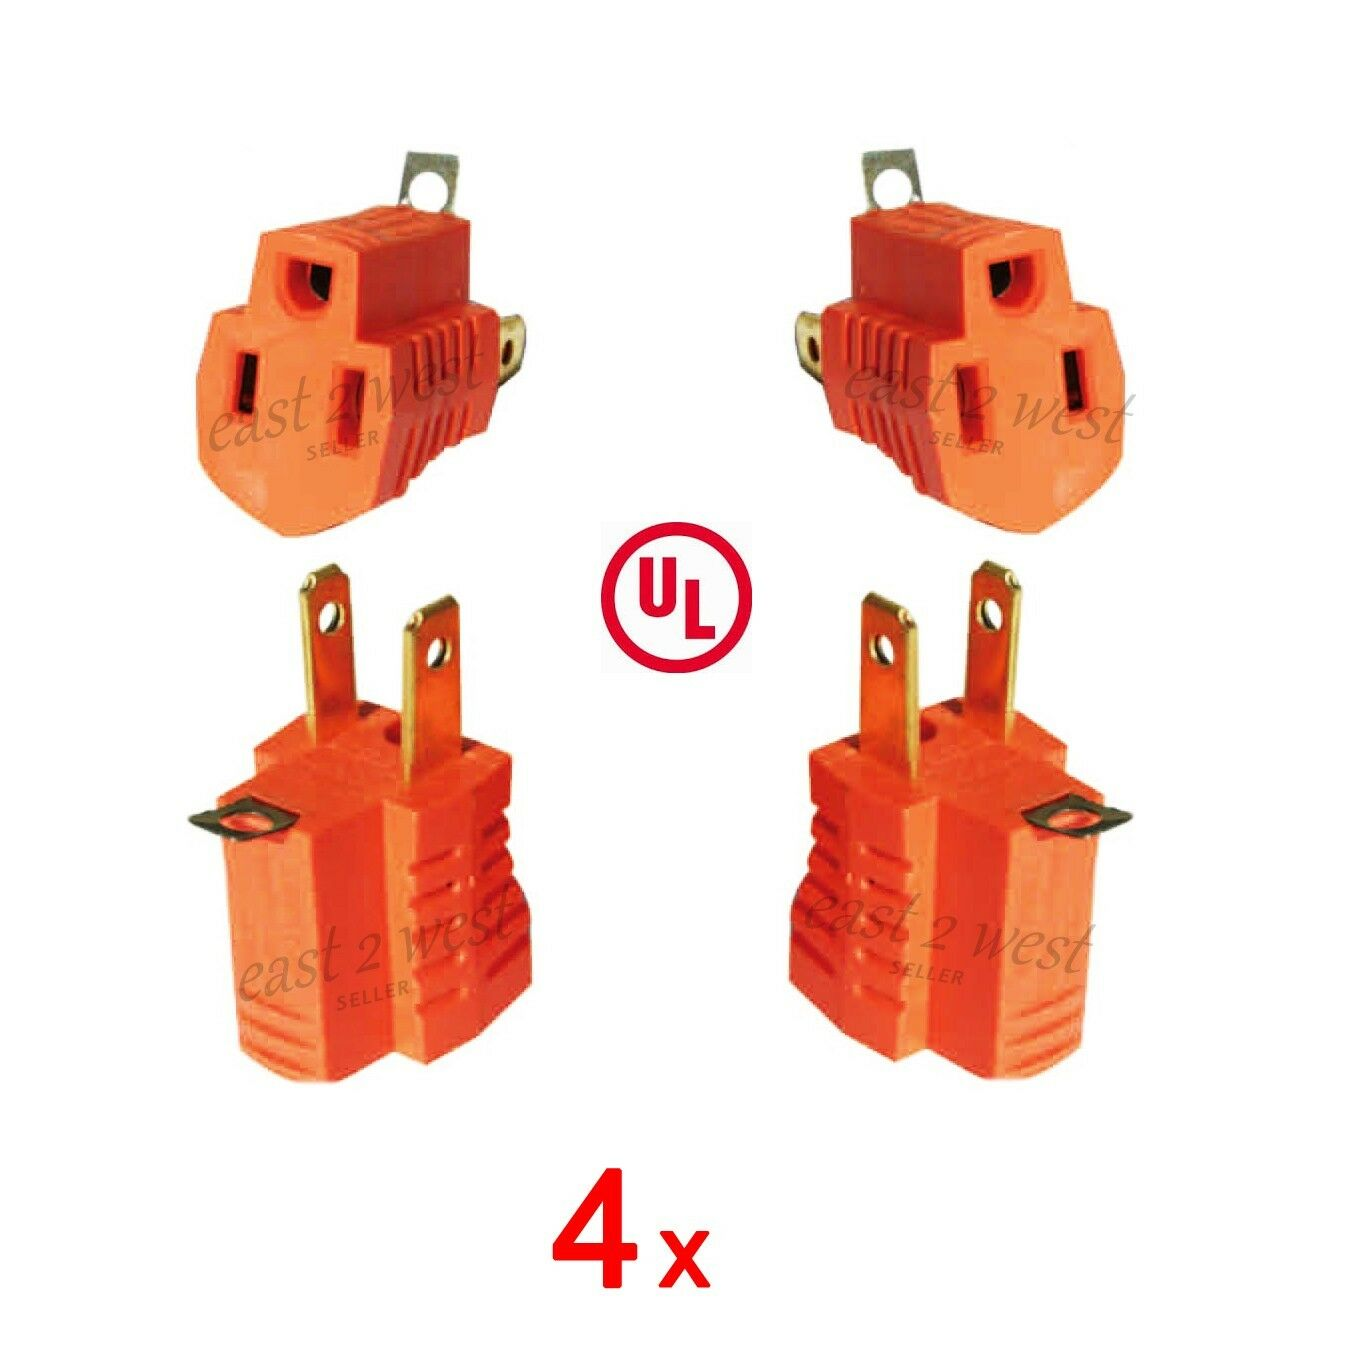 4x 2 Prong To 3 Ac Power Outlet Grounding Adapter Tap Plug Ul Vs Outlets Grounded 1 Of 1free Shipping